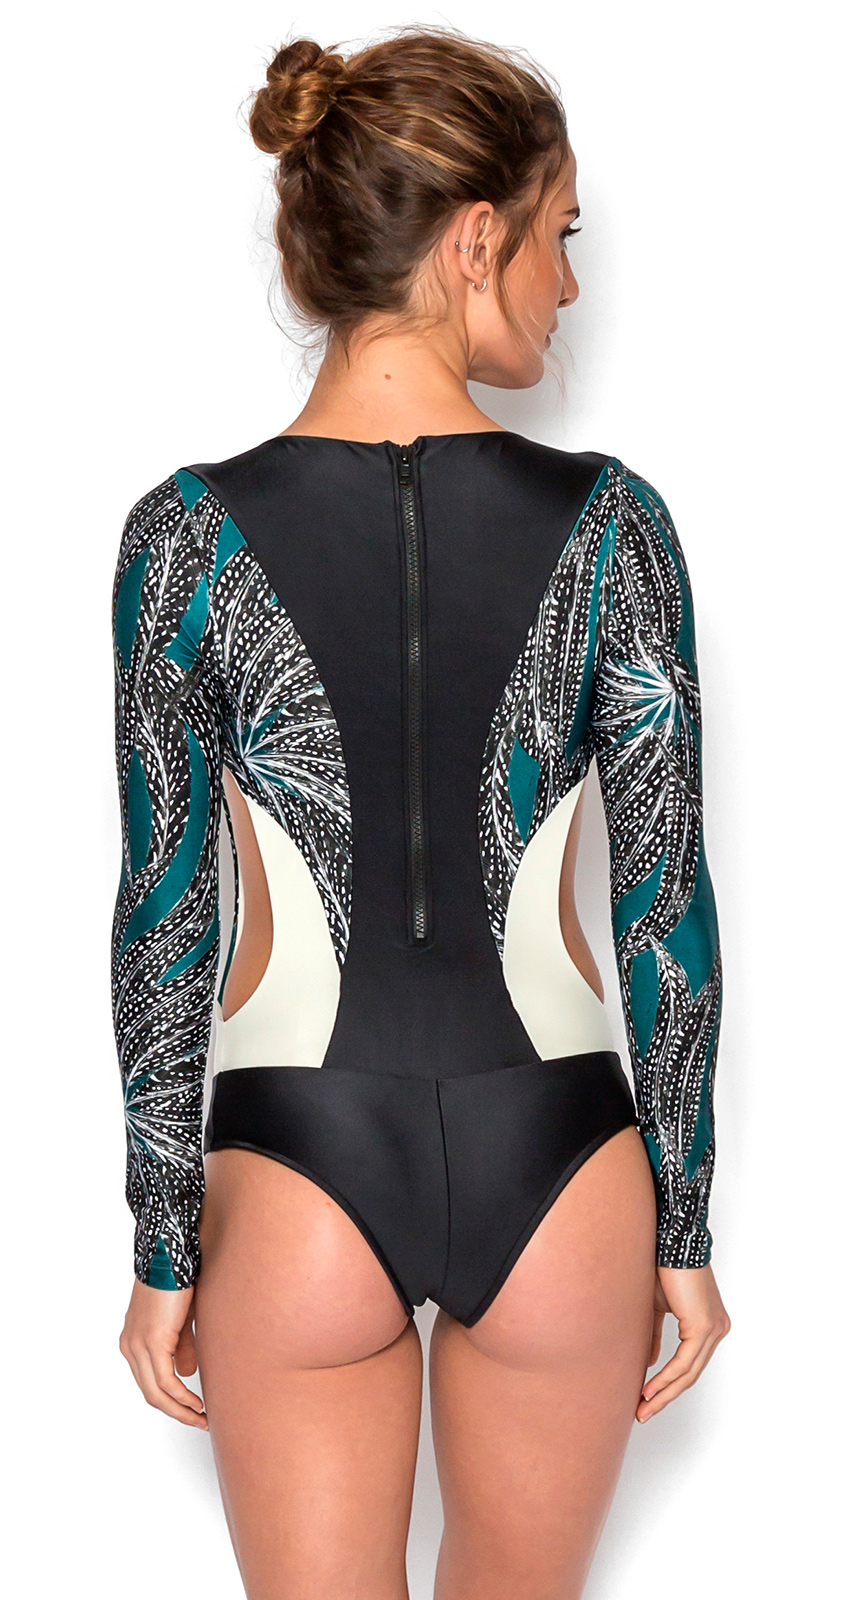 88d6cd42c8 Original Luxurious Long Sleeve Swimsuit - Tara Angola - Woma